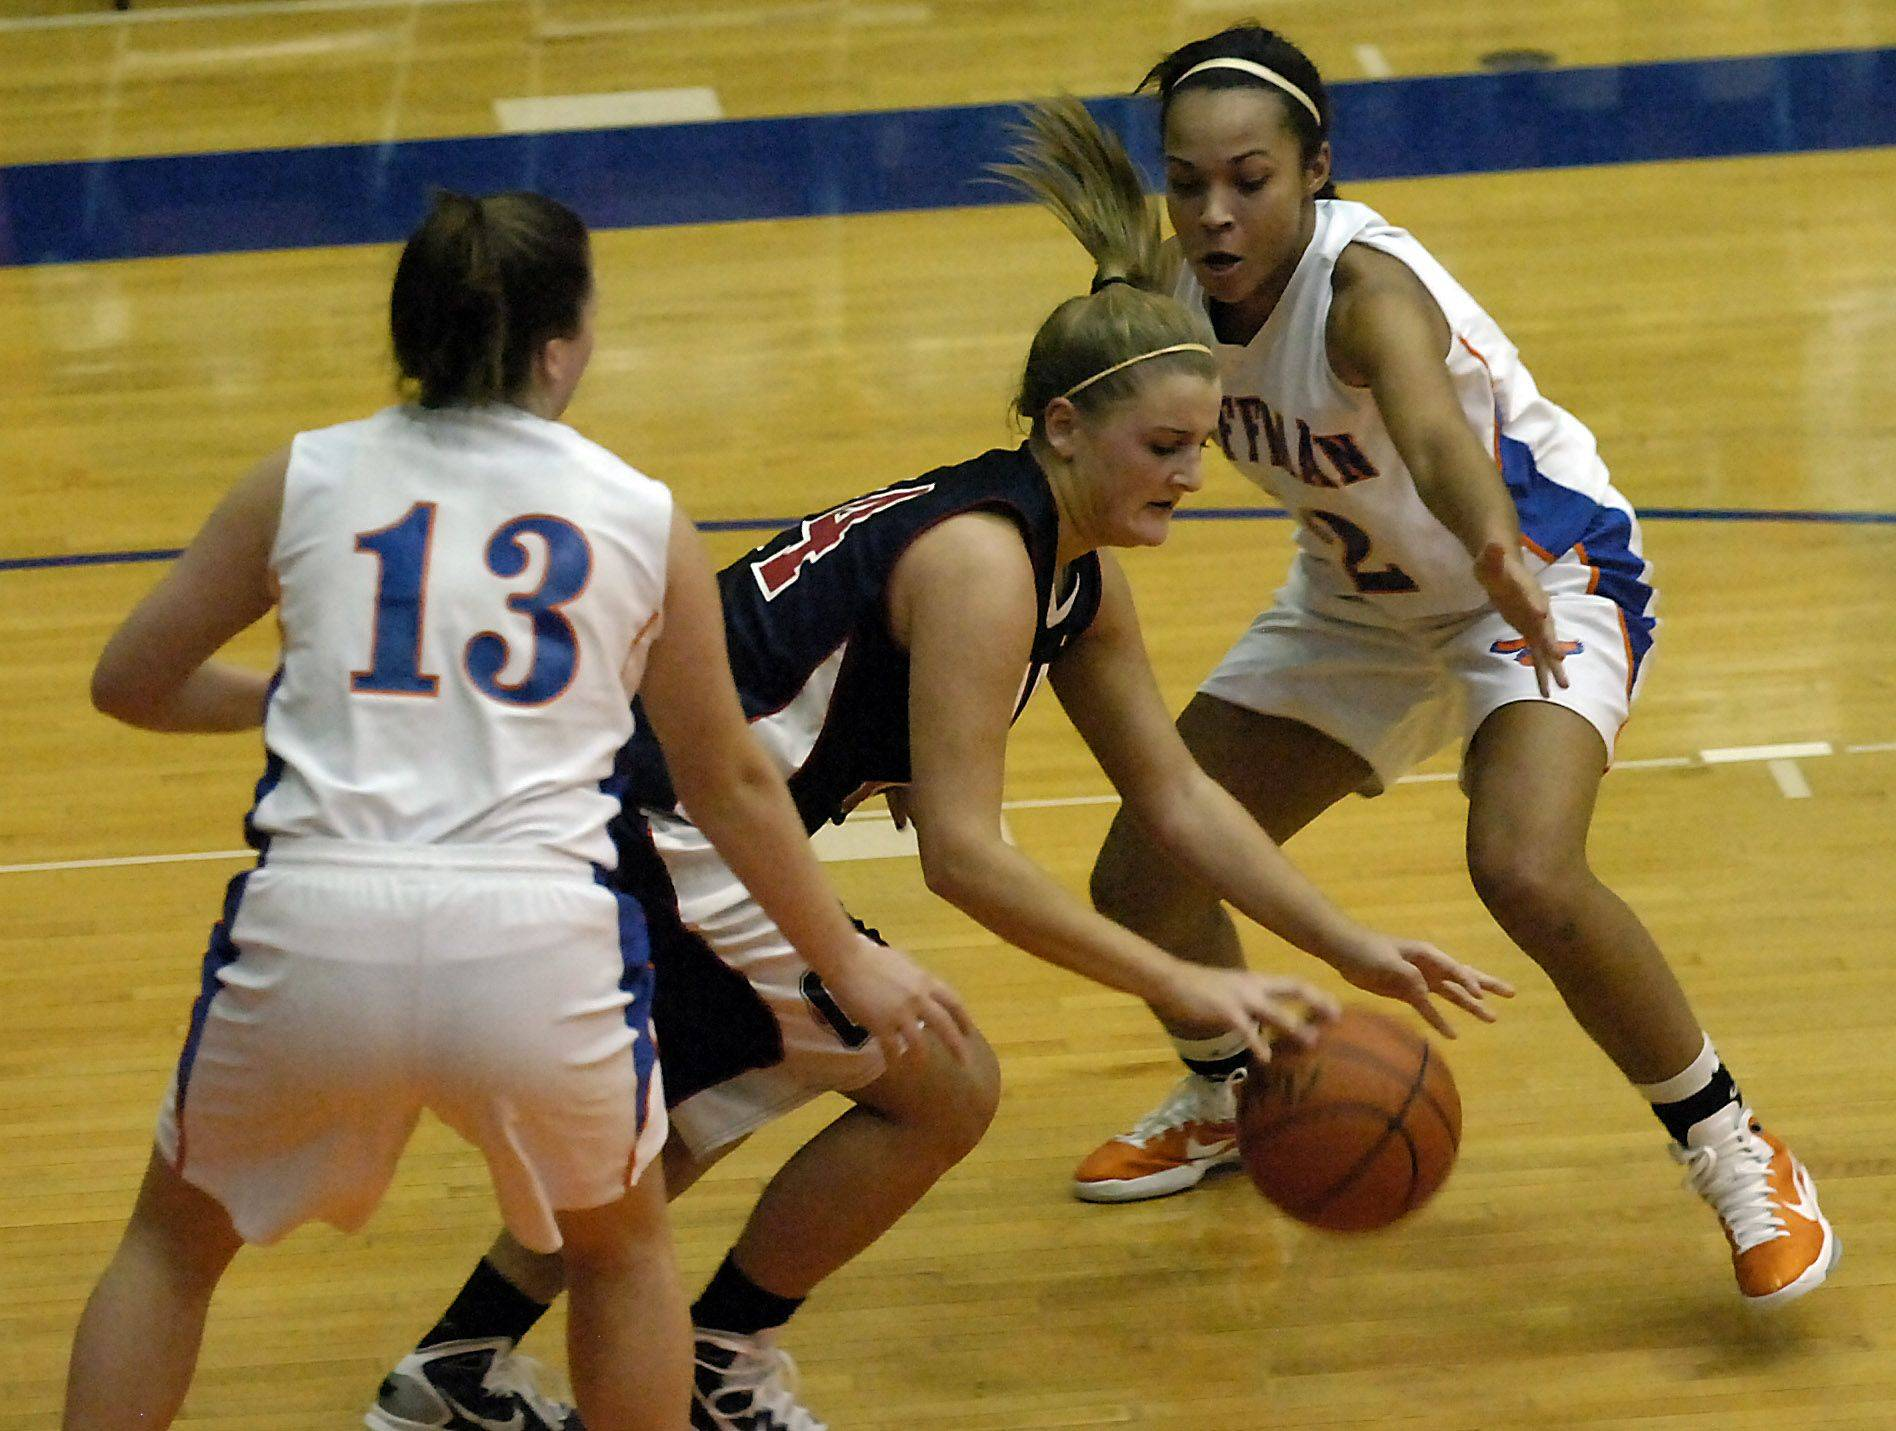 Conant's Jenna Heneghan splits the Hoffman Estates defense of Jada Stotts and Melanie McGinn in the first half.